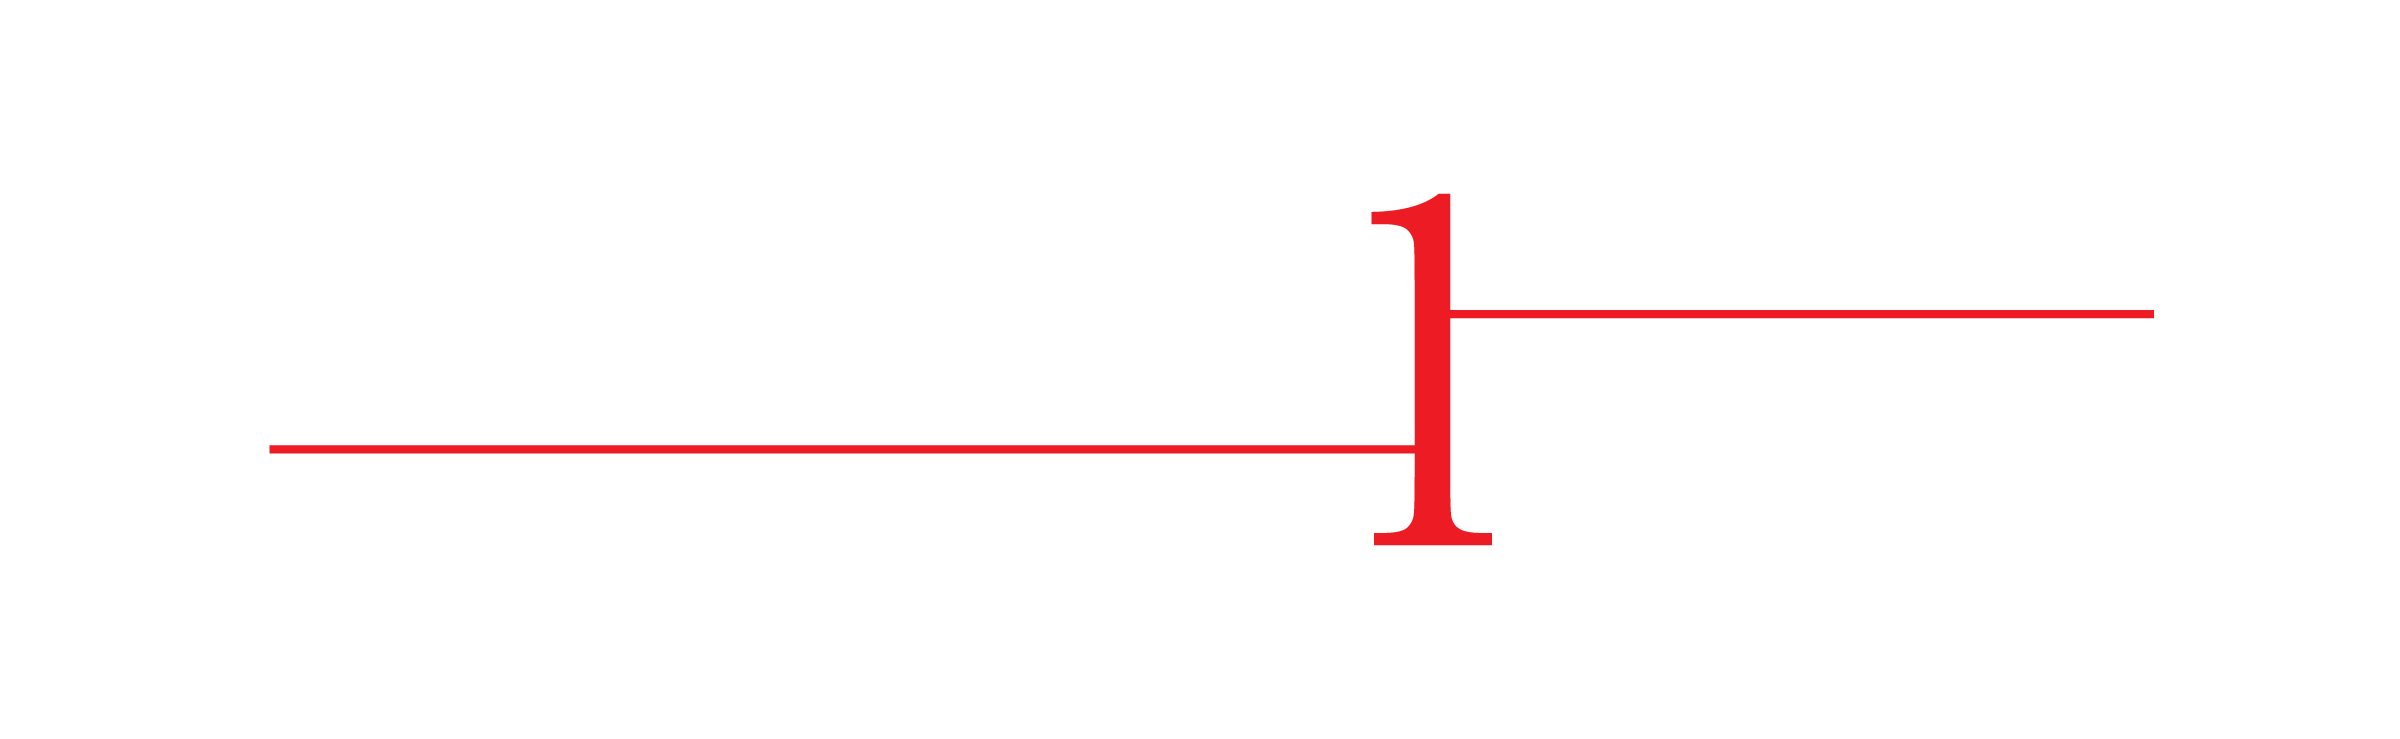 Commercial 1 Brokers logo